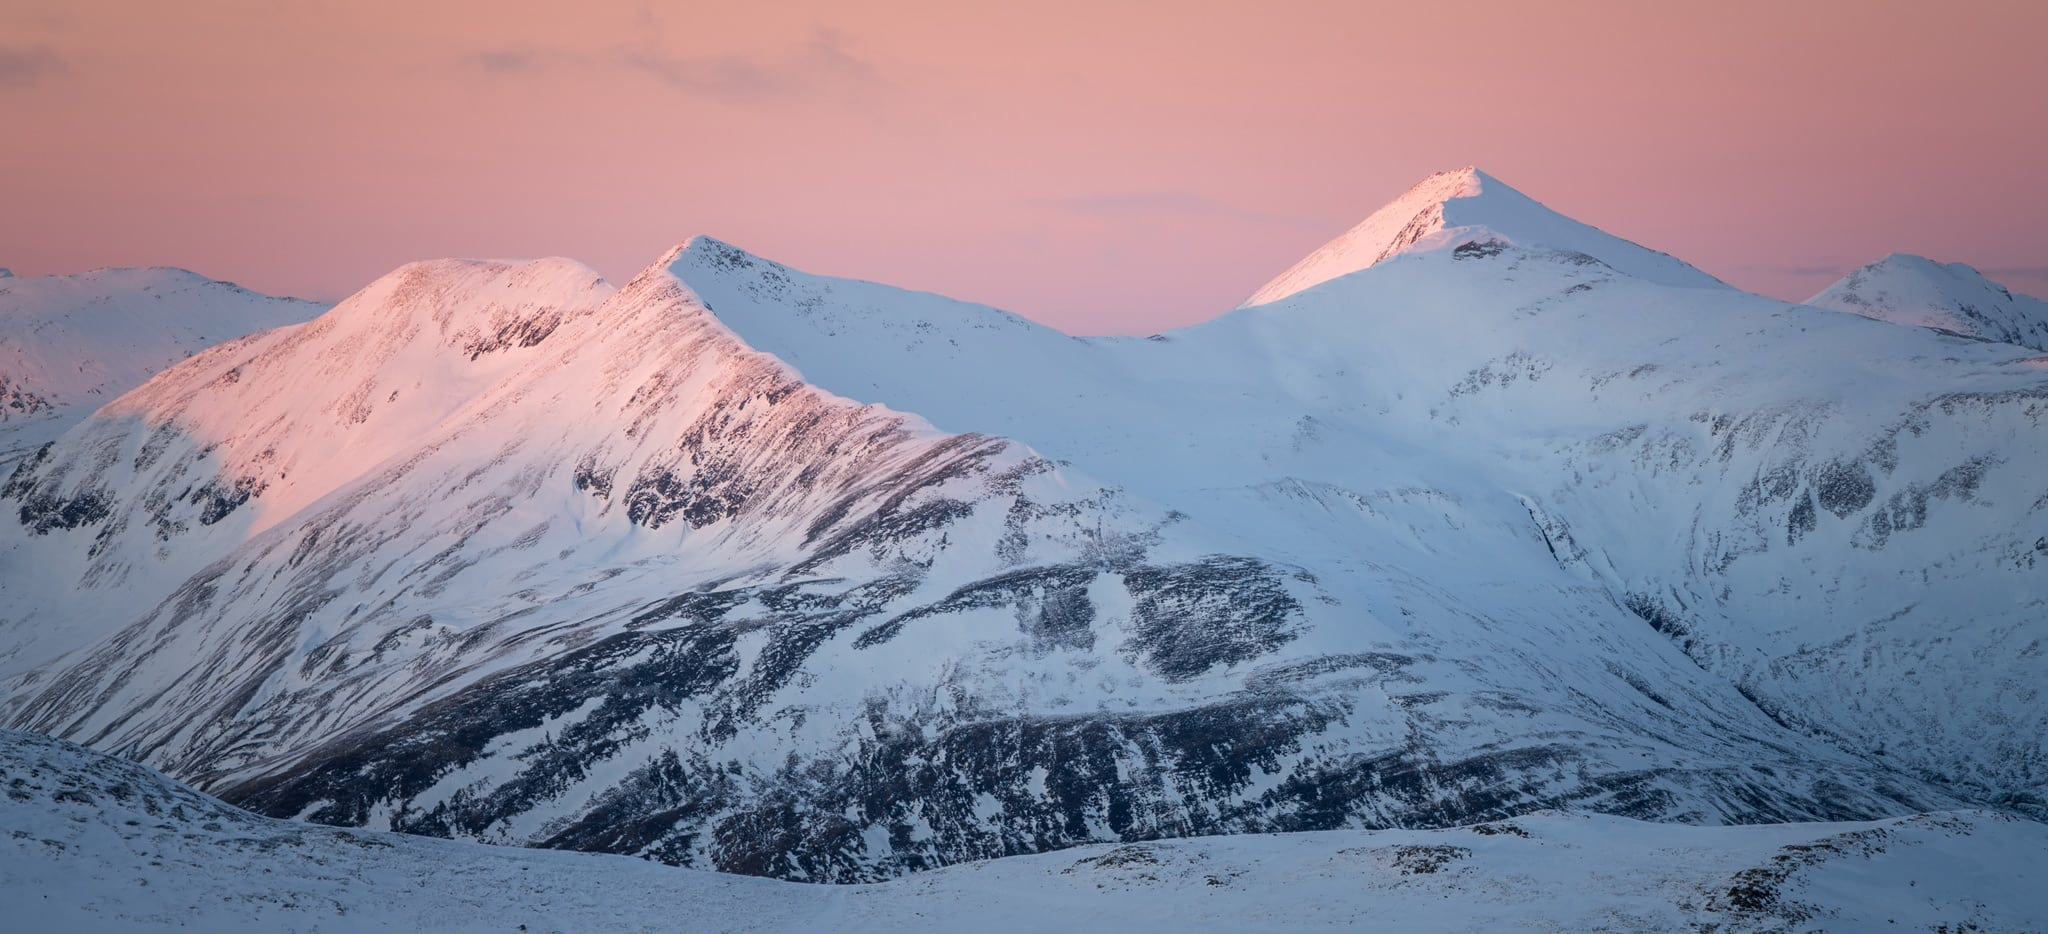 Scotland WInter Mountains - Scotland Landscape Photography